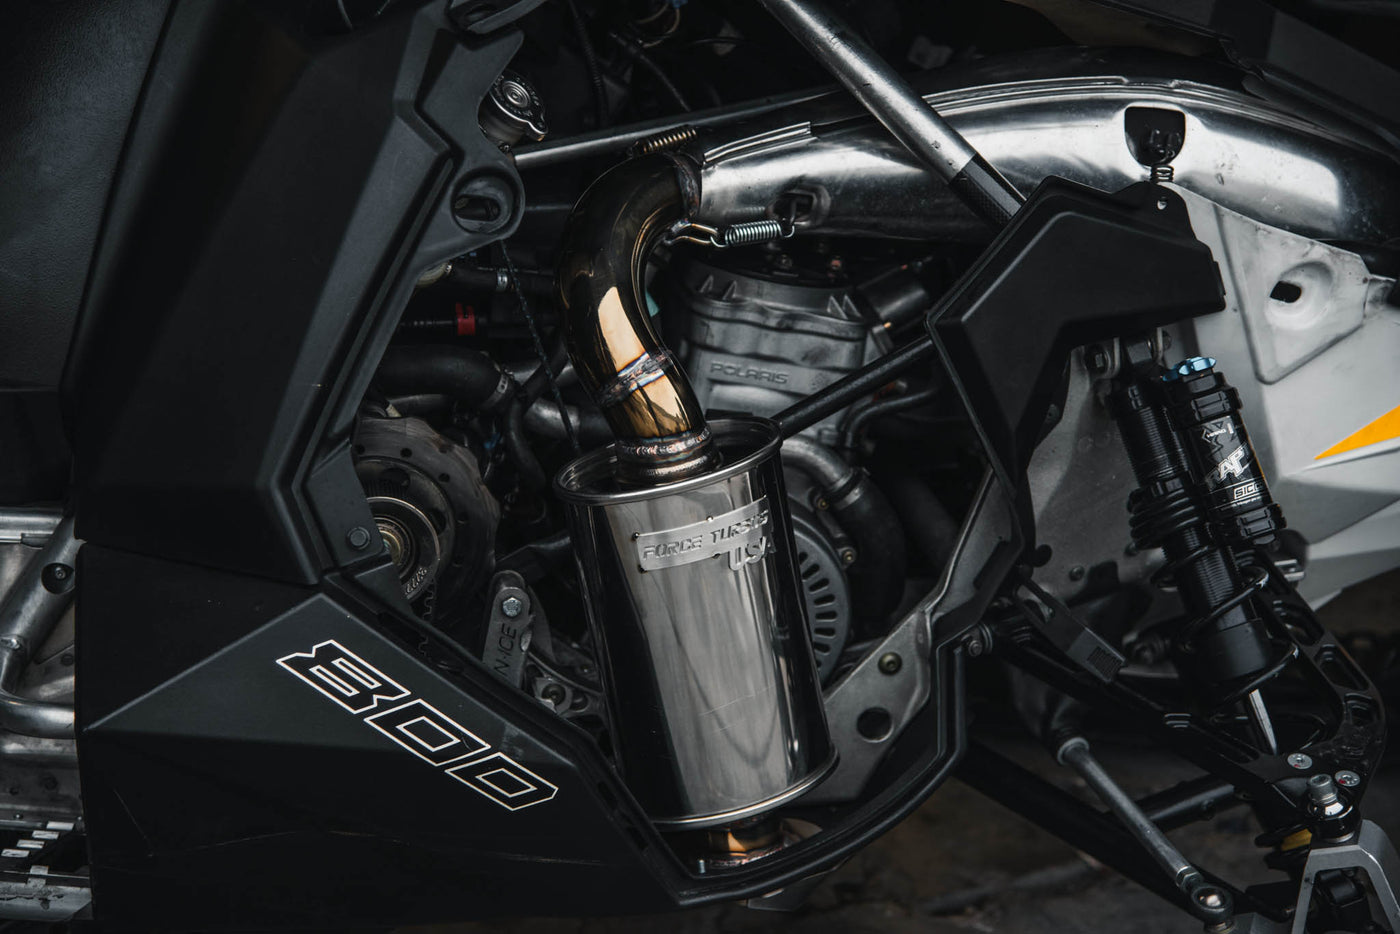 P800 Force Exhaust